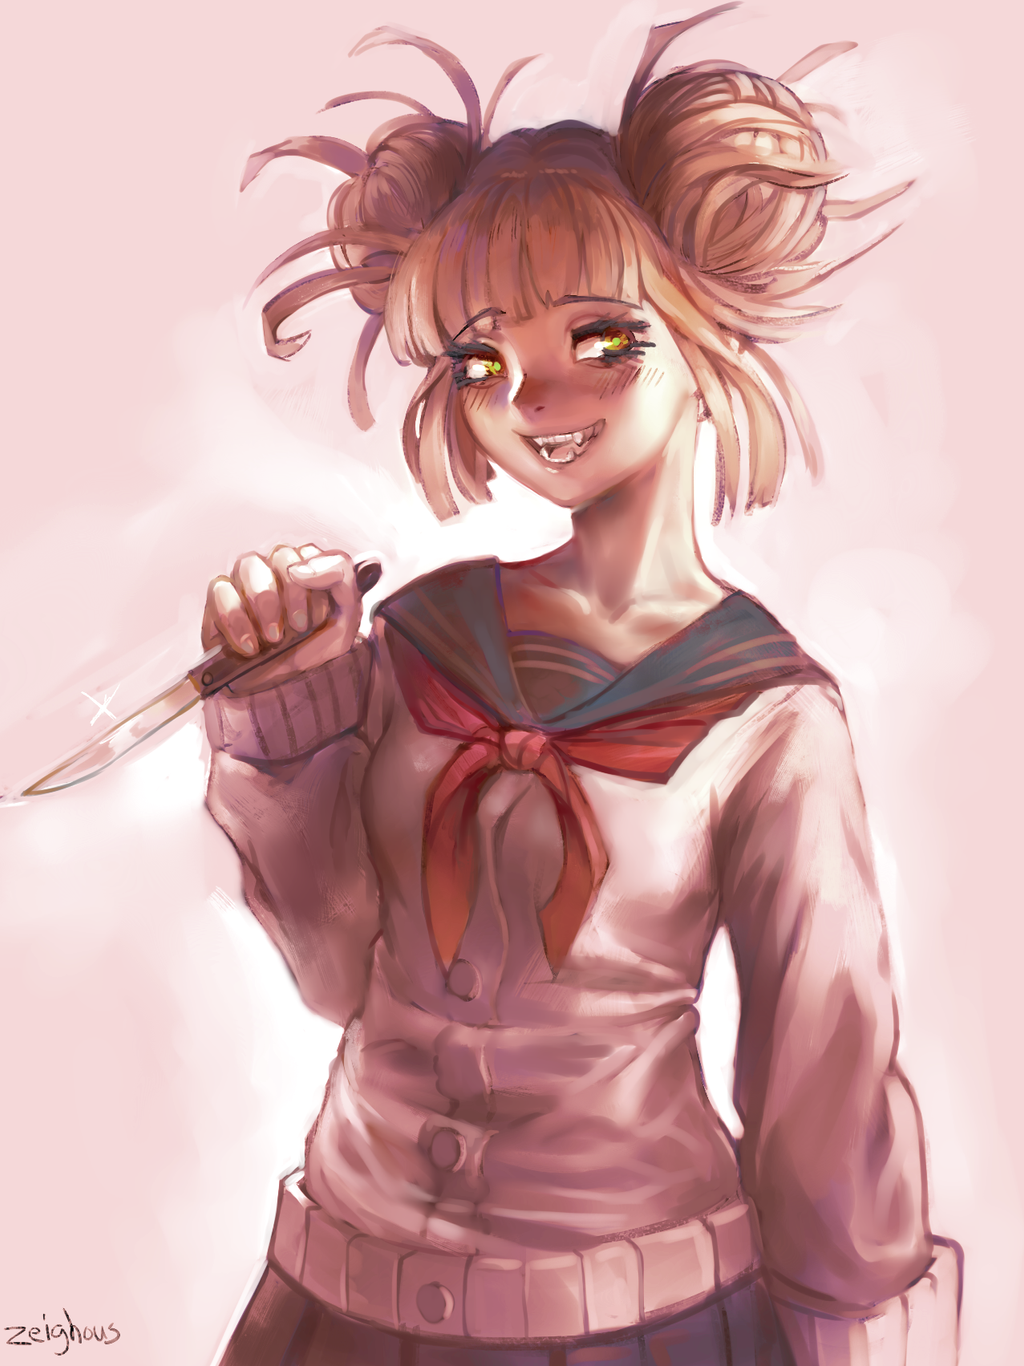 Toga by Zeighous